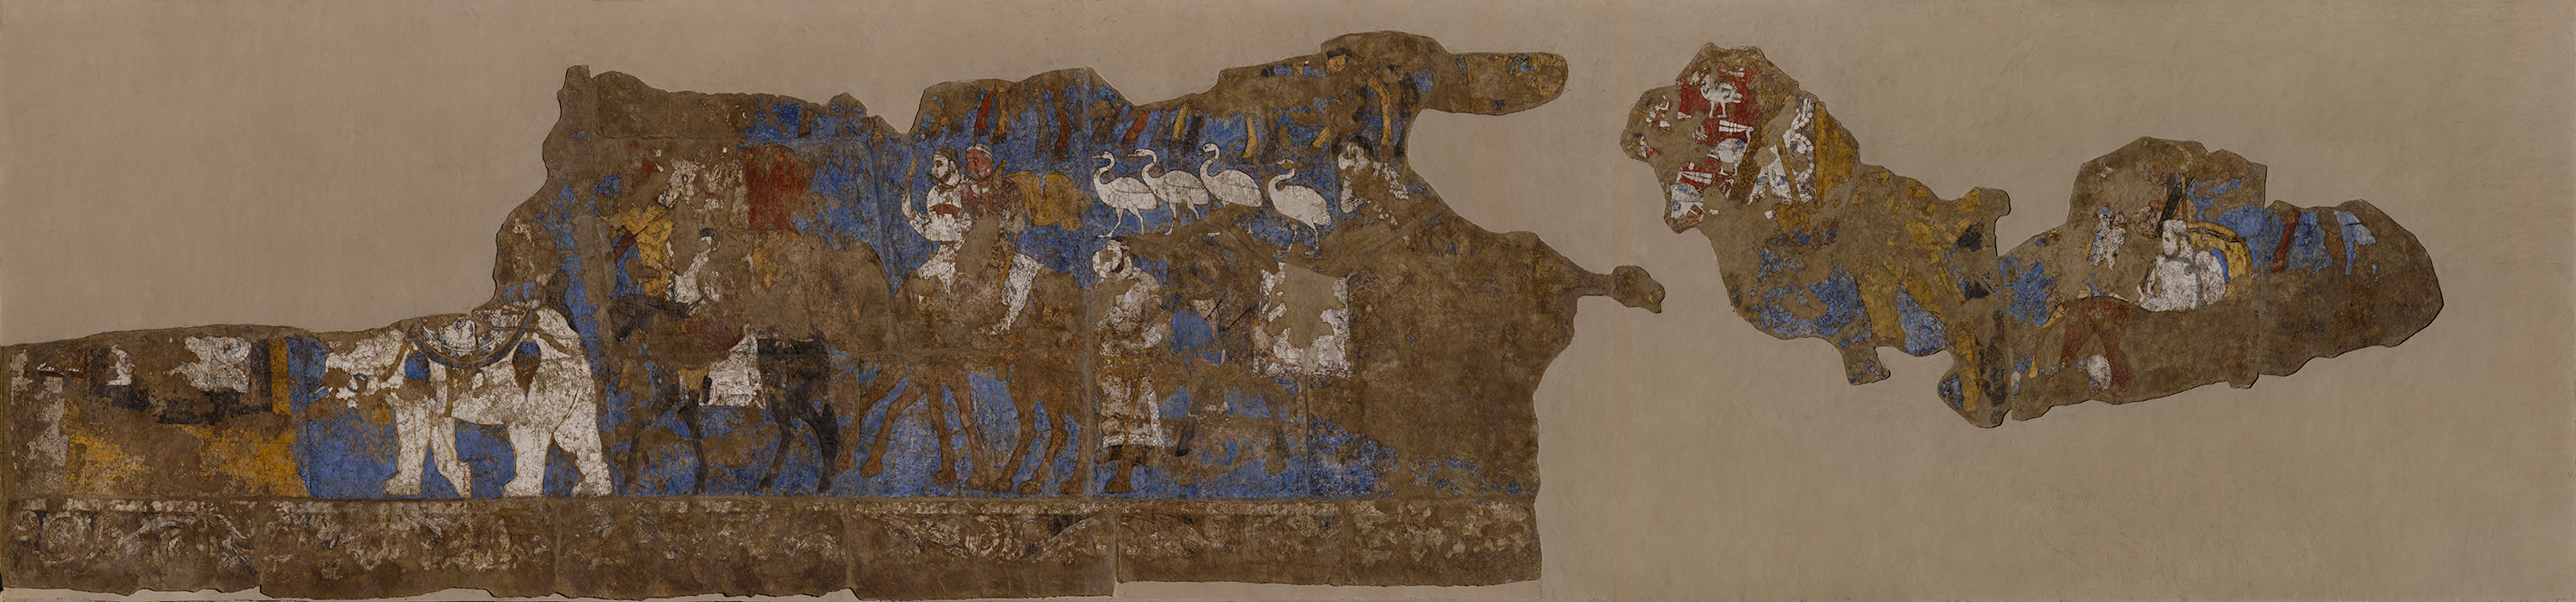 On the Southern Wall of the Hall of Ambassadors at Afrasiab, the wall paintings depict a procession of people seemingly from different parts of the world as indicated by their dress and animals bearing gifts.